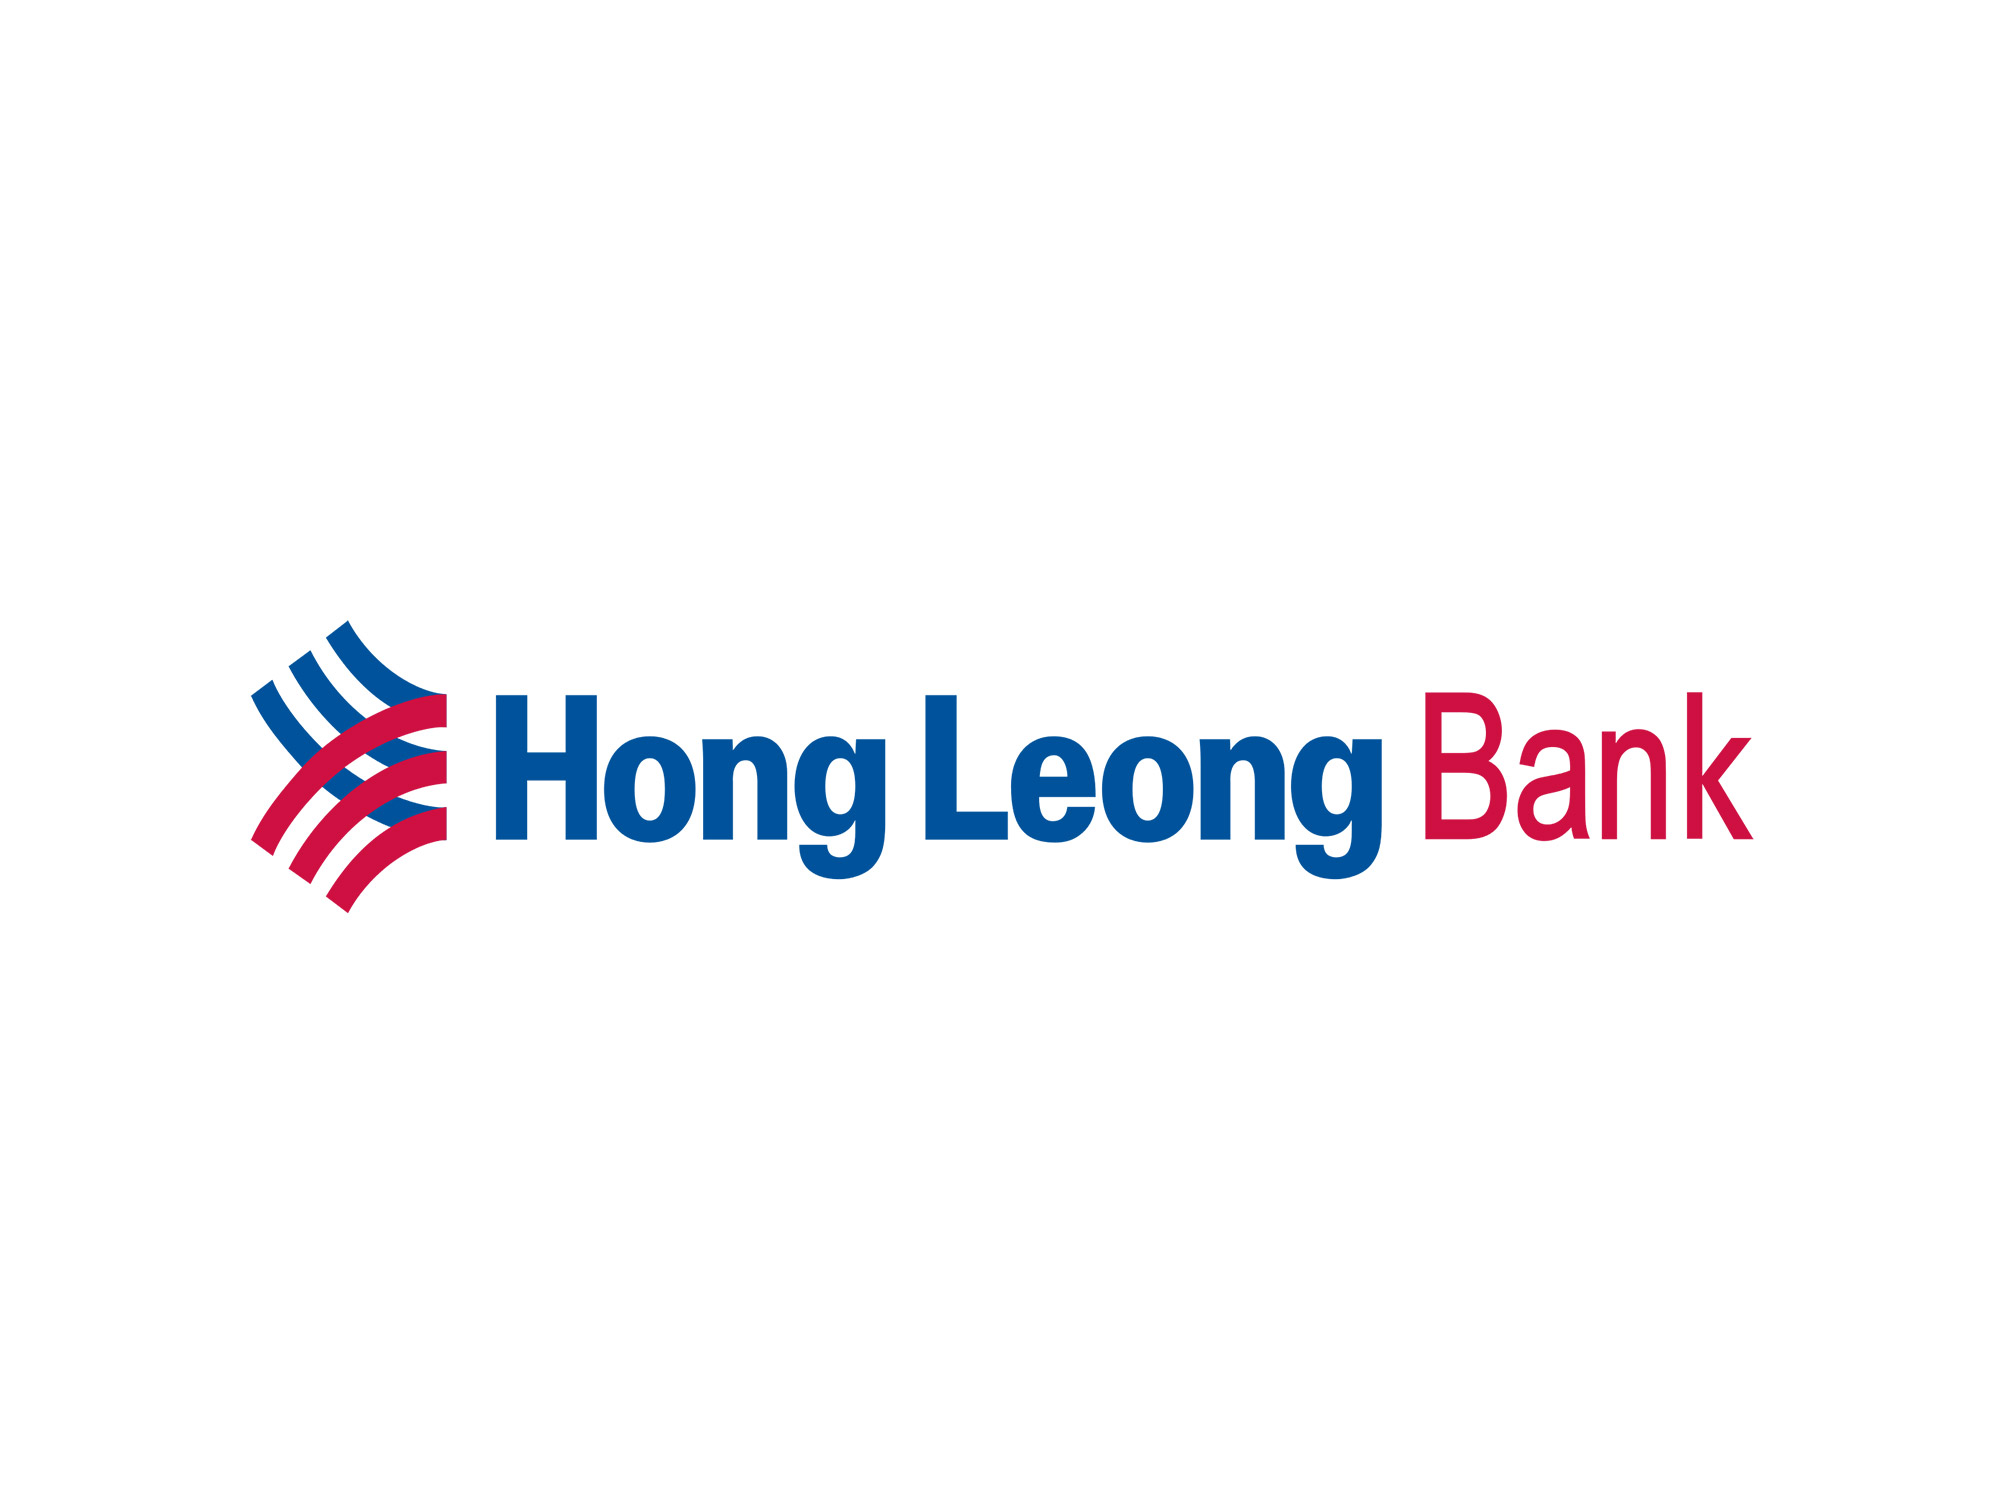 content for hong leong bank Welcome to hong leong bank connect please choose an appropriate registration mode using my atm/debit card: using my account for any further assistance and enquiries, please contact our hong leong call centre +8428 73008100.